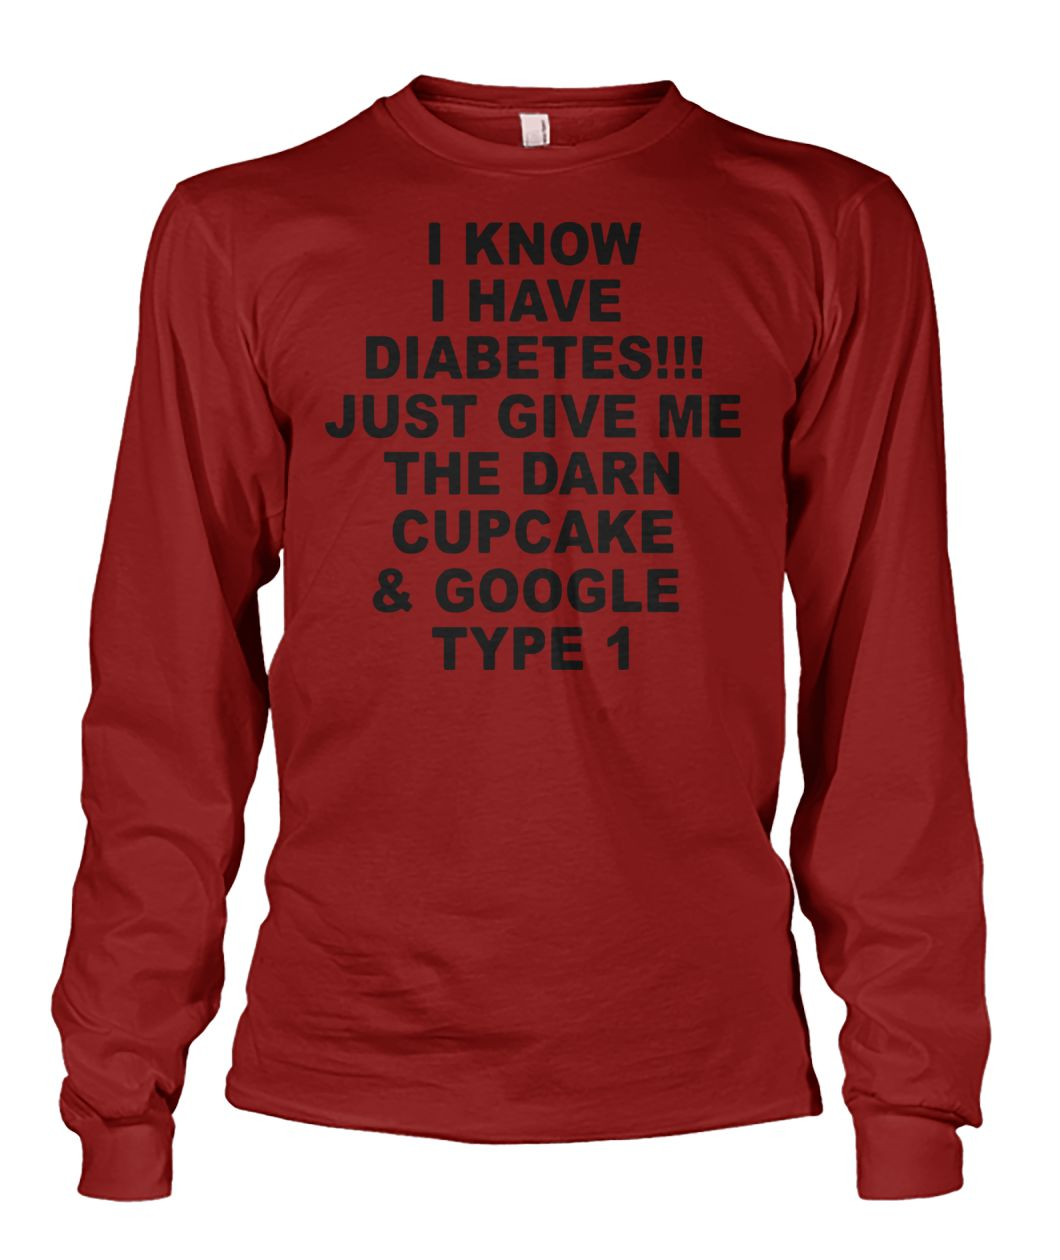 I know I have diabetes, just give me the darn cupcake and google type 1 unisex long sleeve